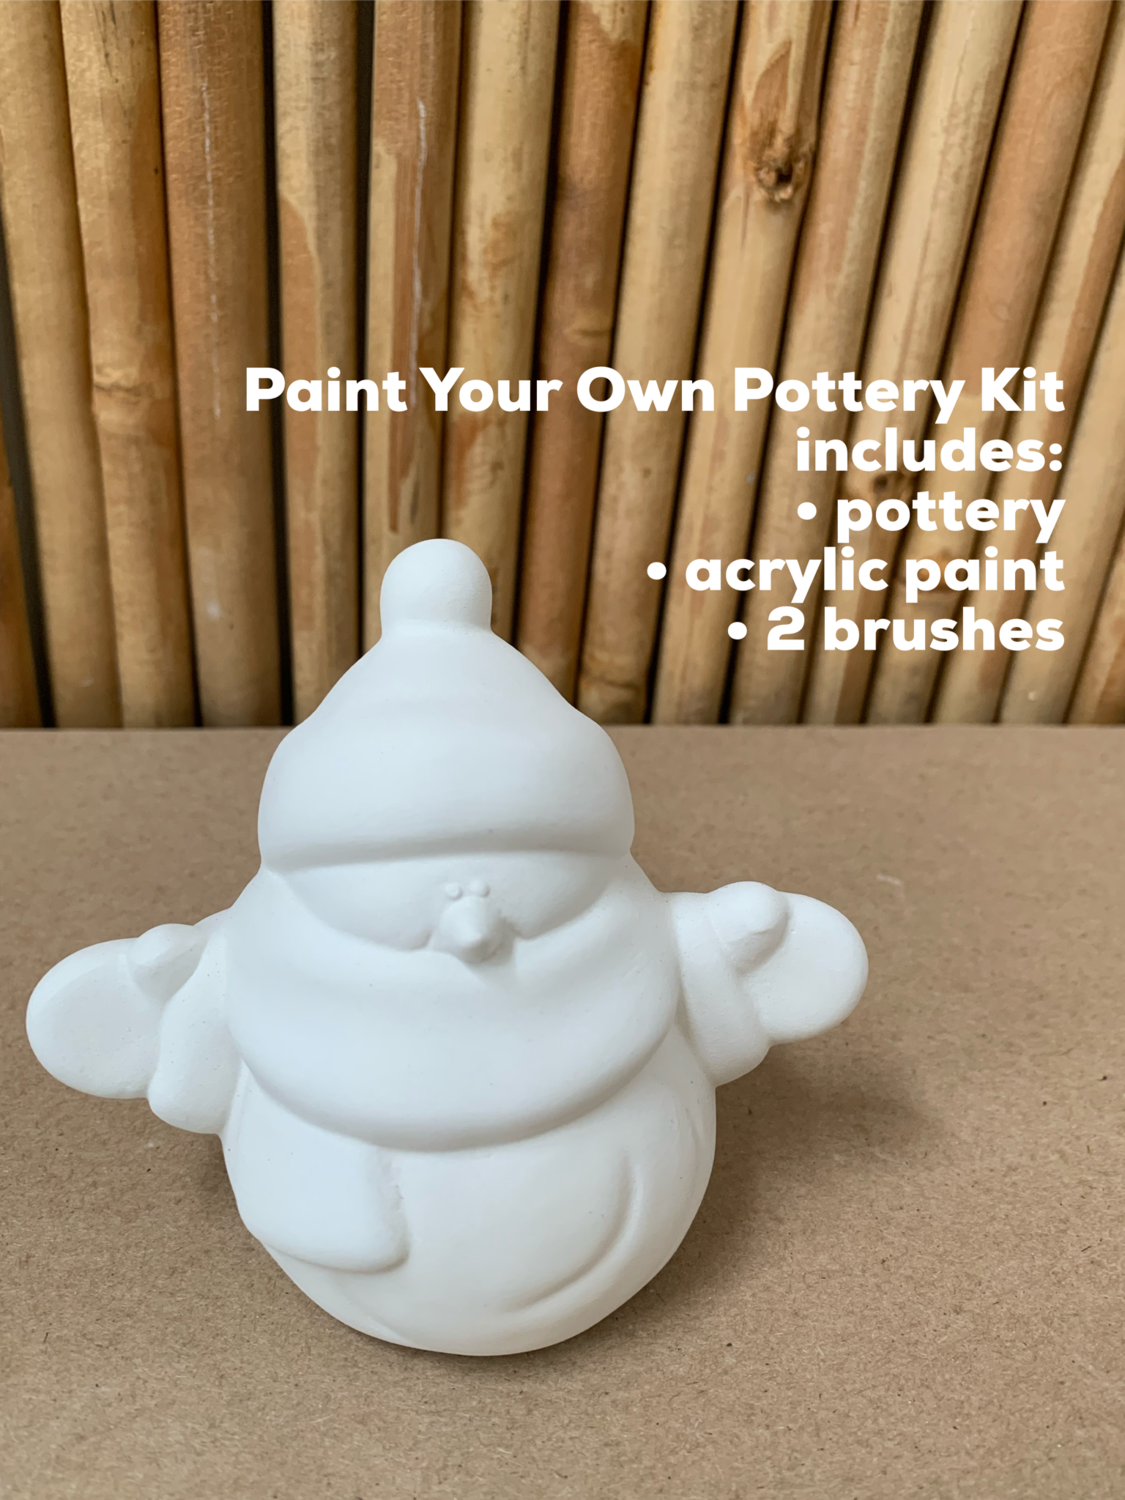 NO FIRE Paint Your Own Pottery Kit -  Ceramic Small Snowman Figurine Acrylic Painting Kit